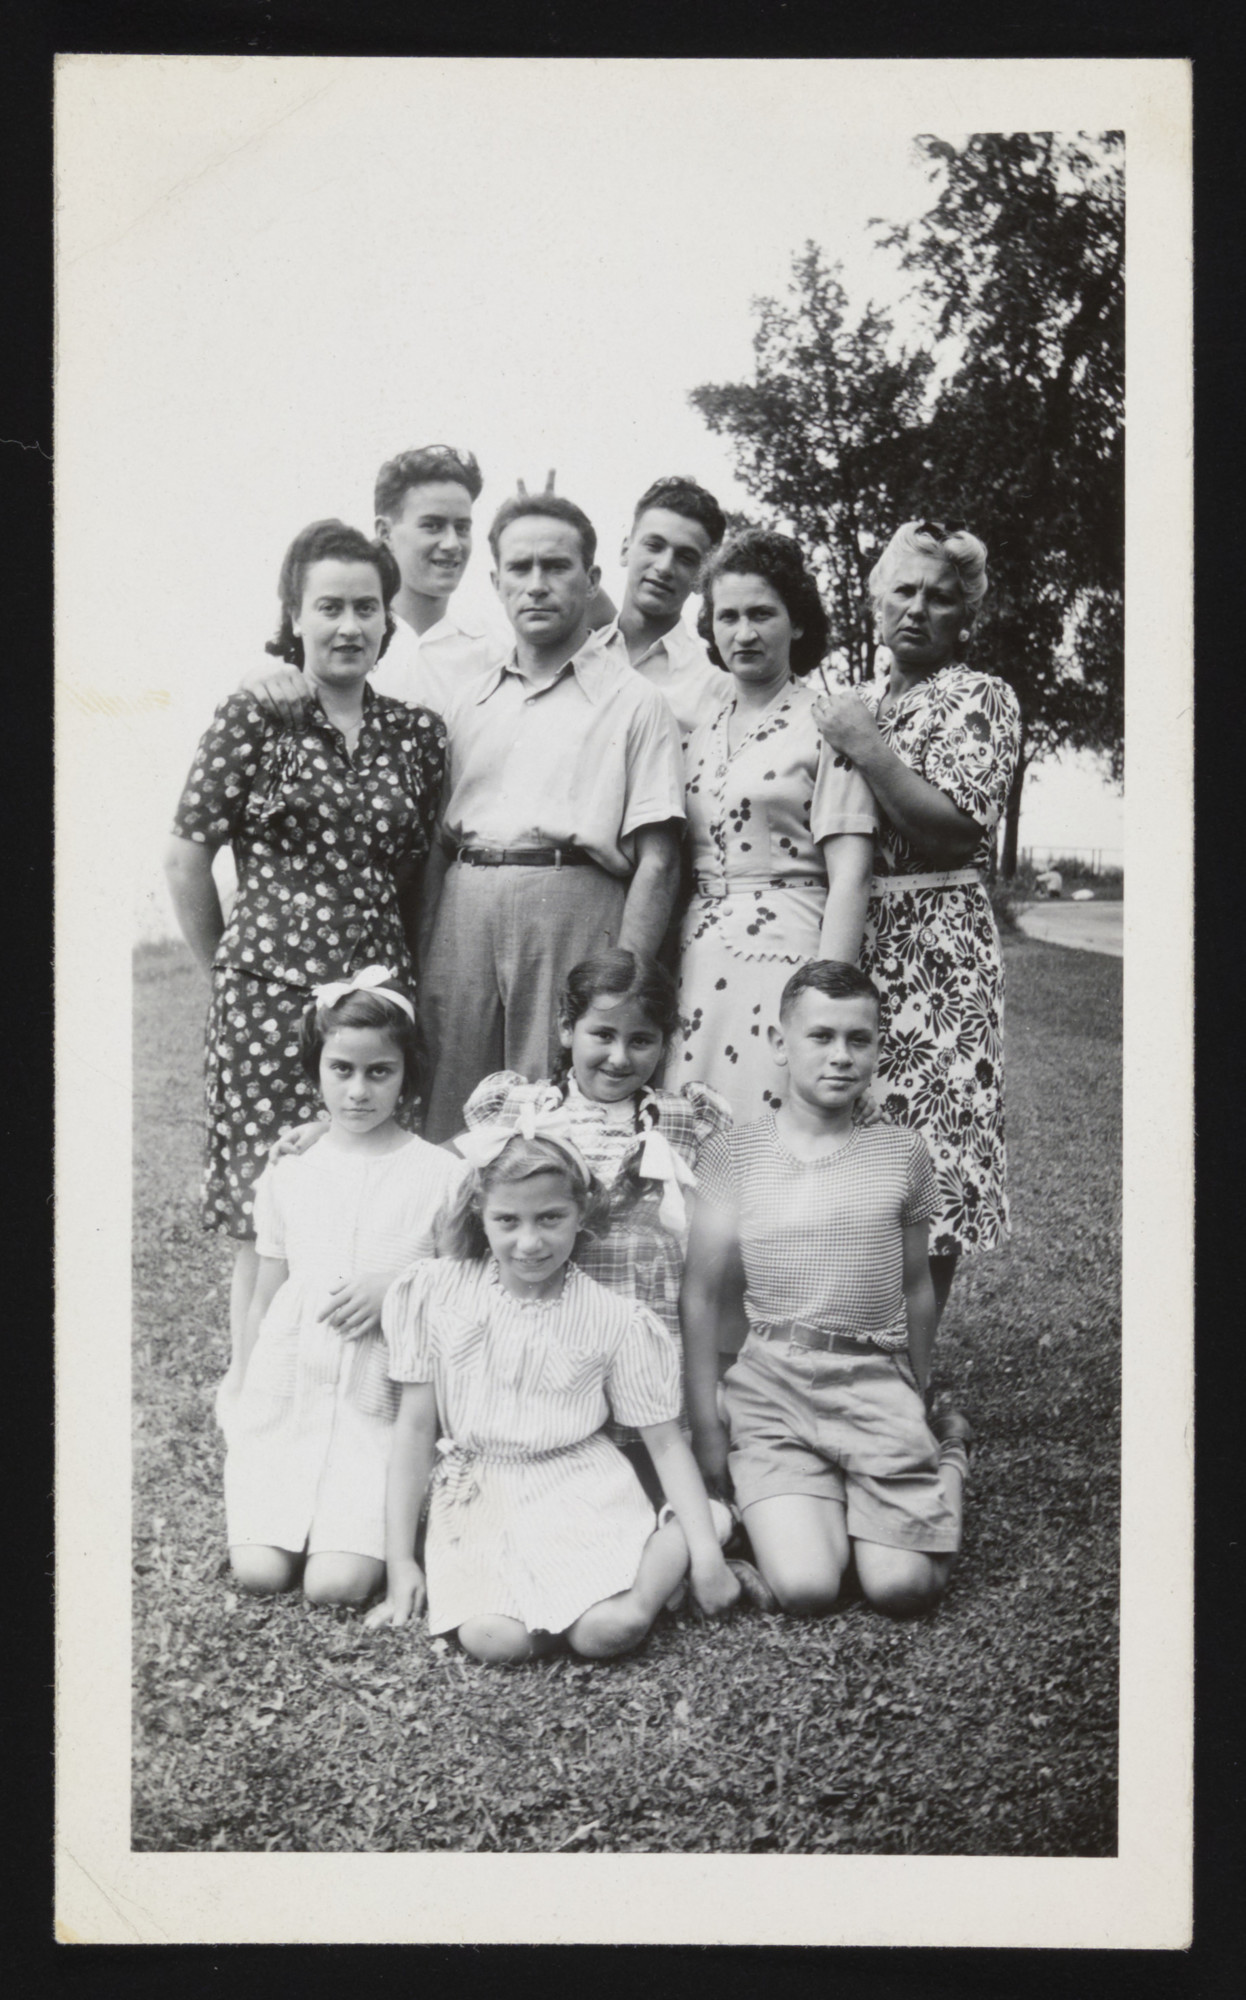 The Hendel family poses for a group portrait in Fort Ontario.   Pictured: First row--Ruth, Gisele Kremer, Mindy (an American relative) and Vilko.  Second Row: Hana, David, Eisik, Herman, and Berta